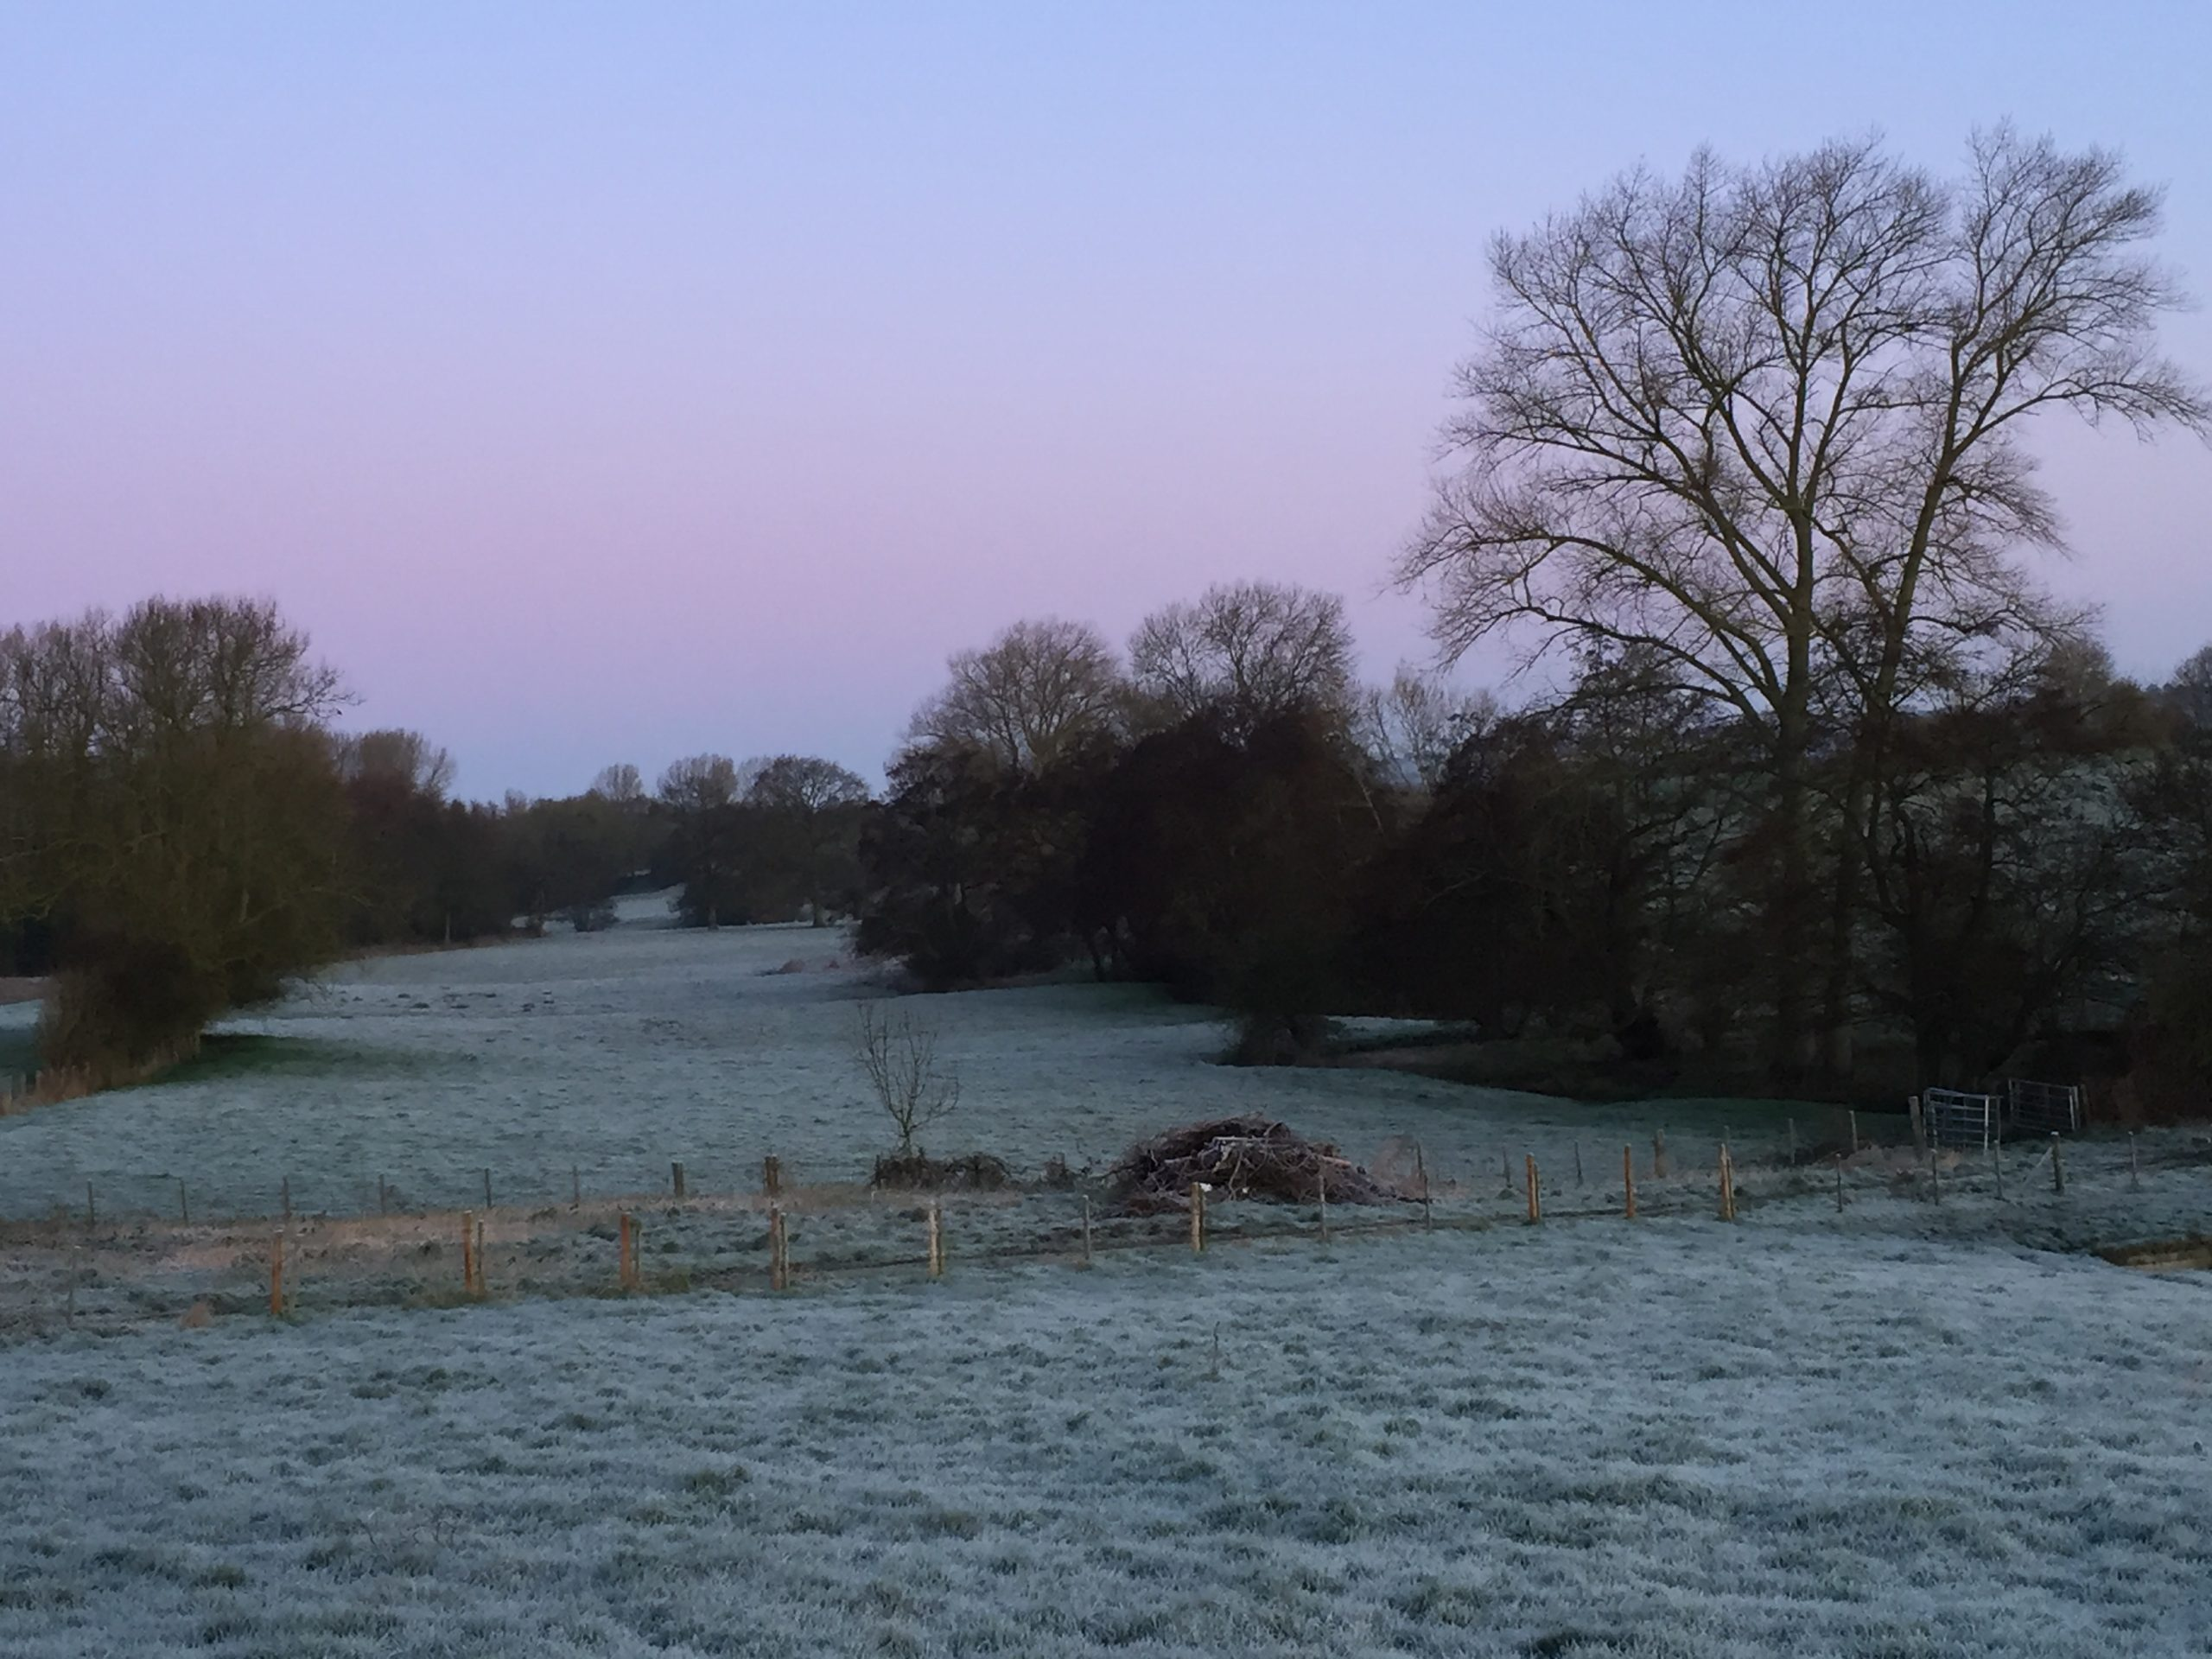 A frosty morning in the Great Stour Valley